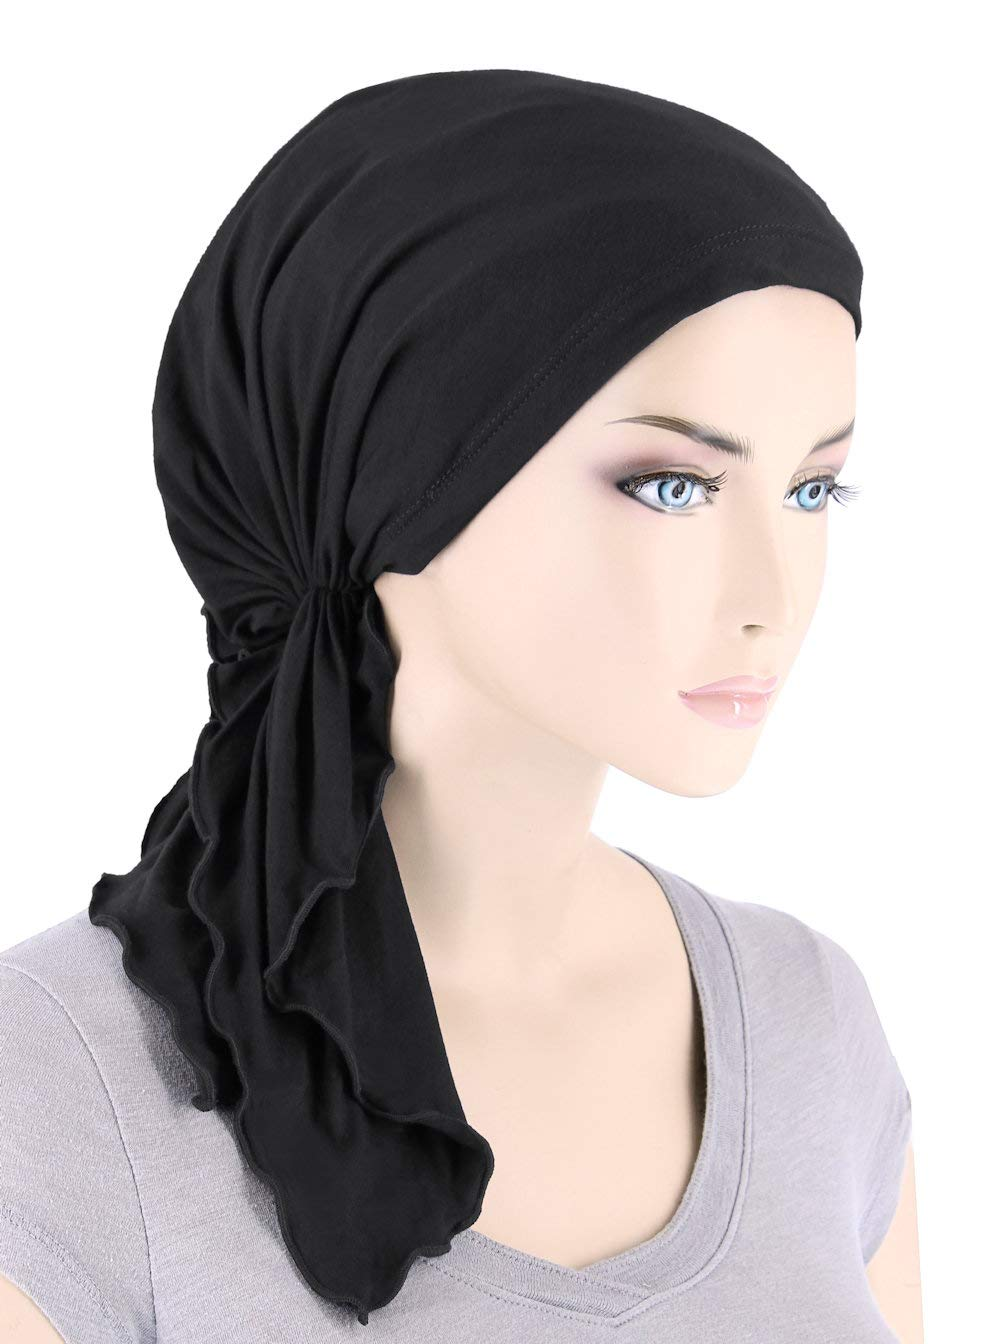 The Bella Scarf Lux Ultra Soft Bamboo Chemo Cancer Turban Head Scarves Pre-Tied Onyx Black by Turban Plus (Image #1)